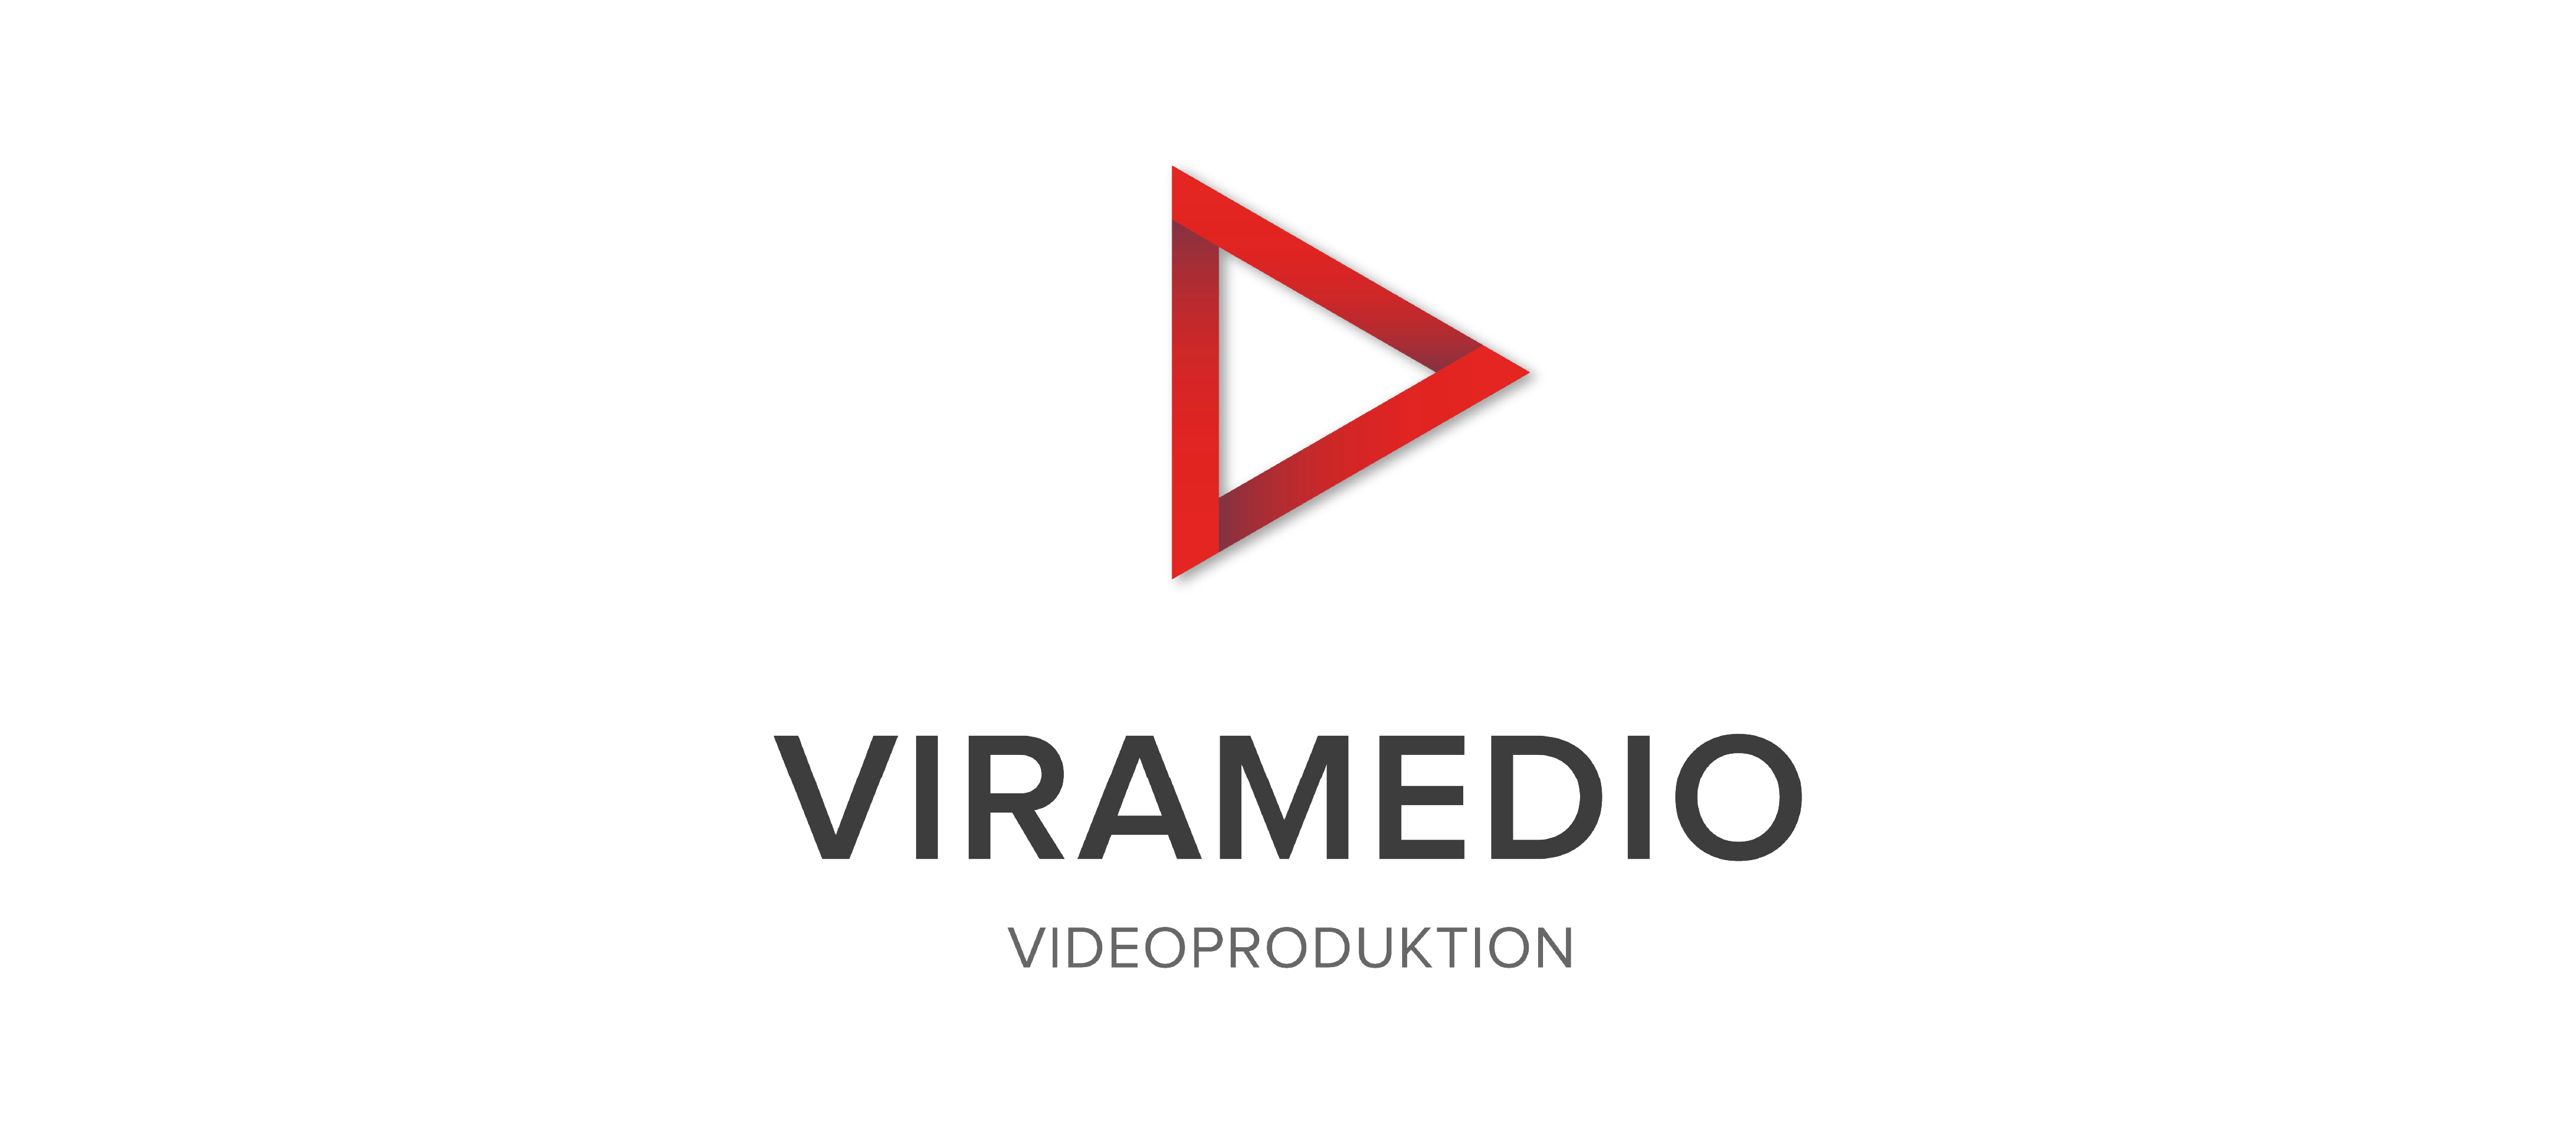 VIRAMEDIO Videoproduktion